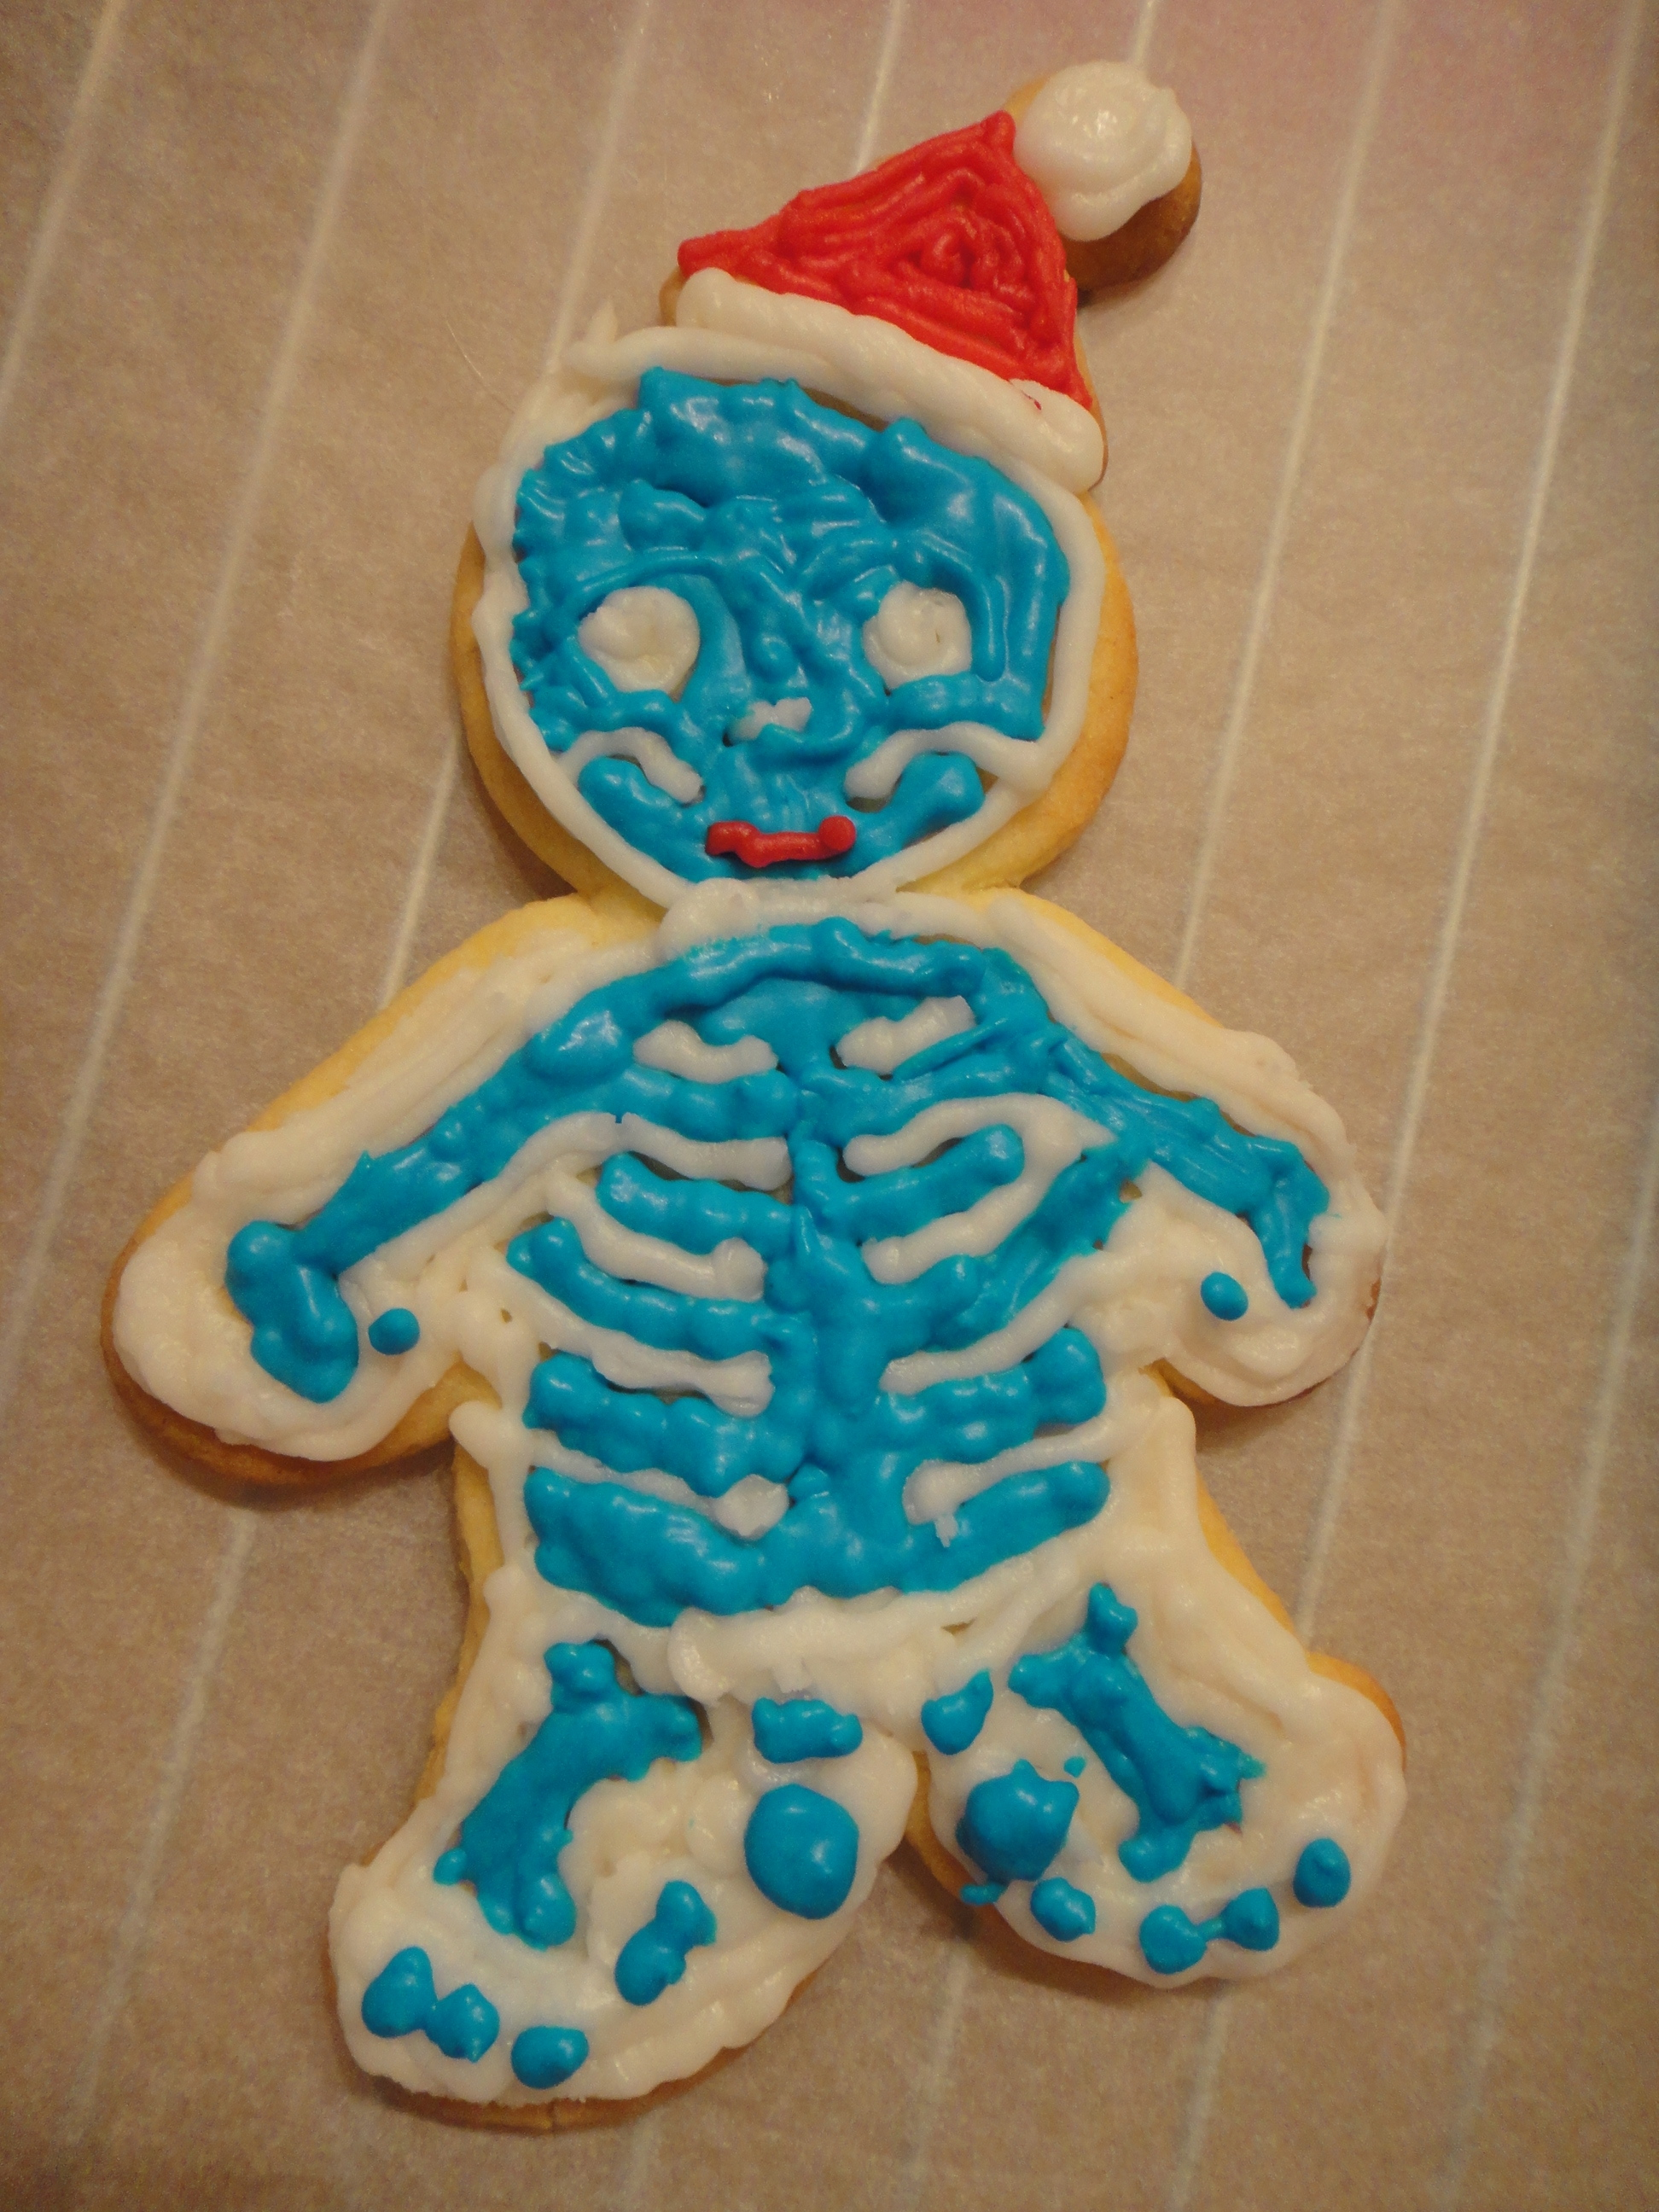 limited edition ;-) one of a kind ;-) Gingerdead Man